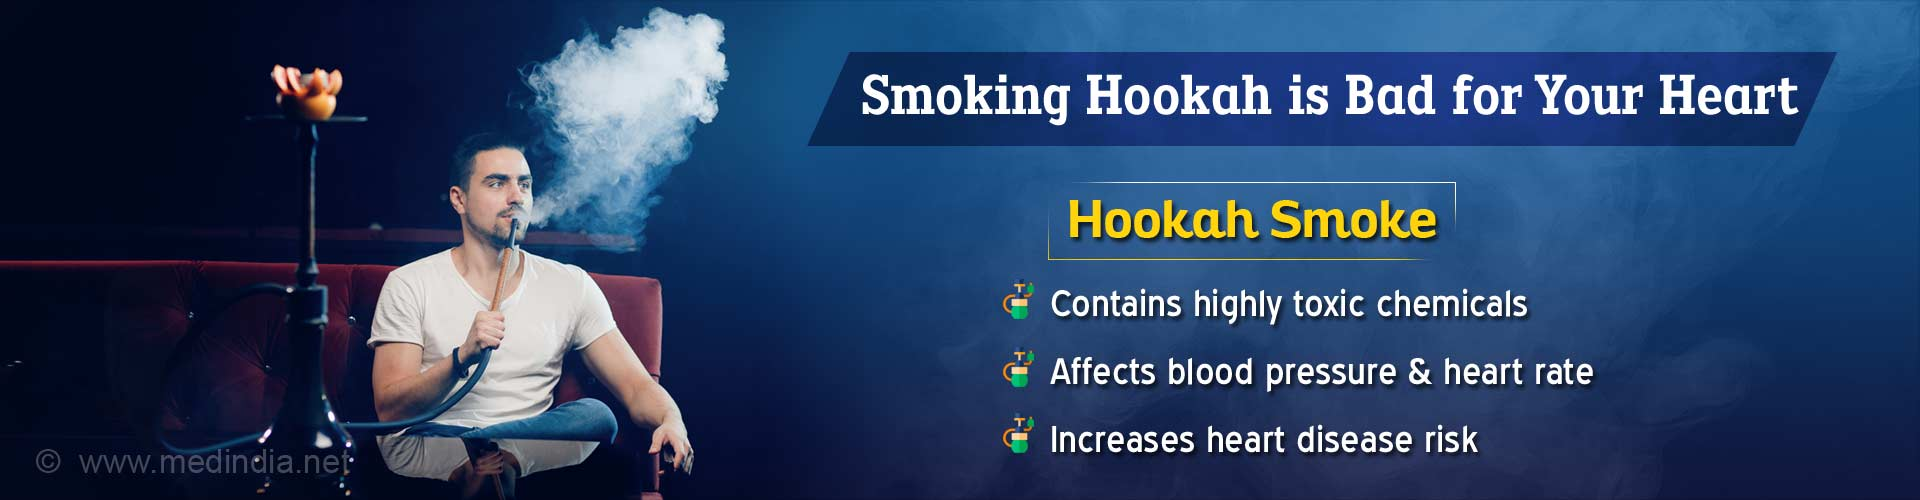 Hookah Smoke Can Affect Your Heart Health: Here's How